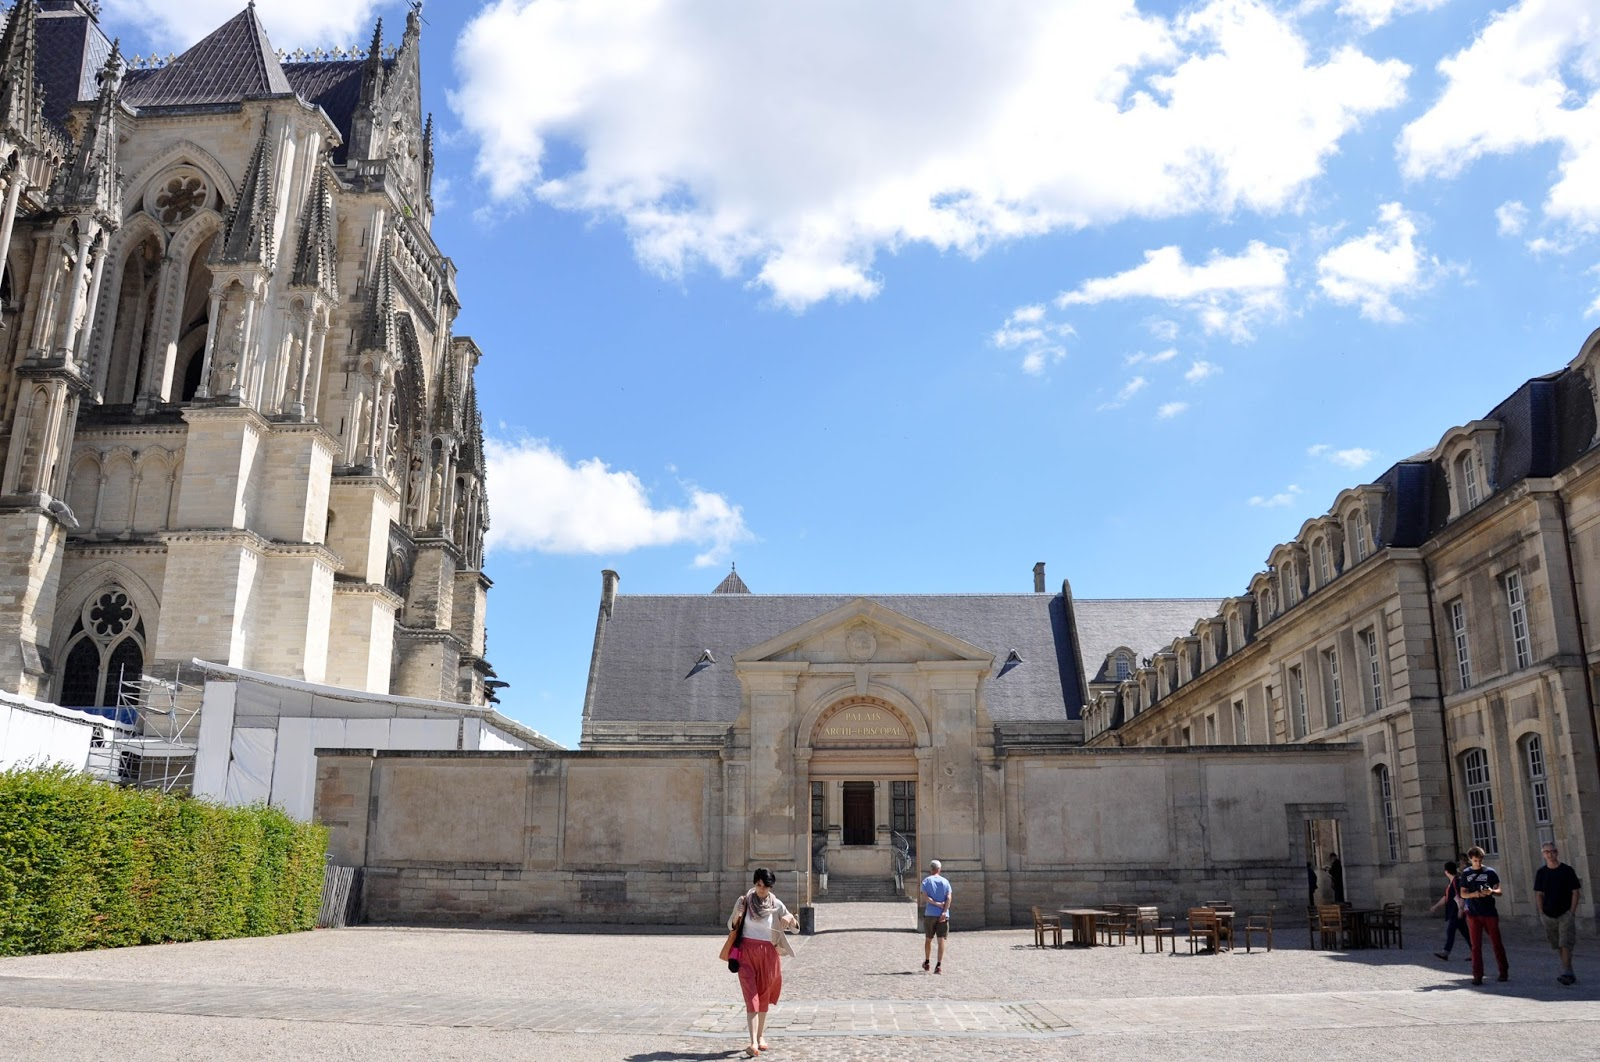 The square in front of the Archbishop's Palace, Reims Cathedral, Reims, France